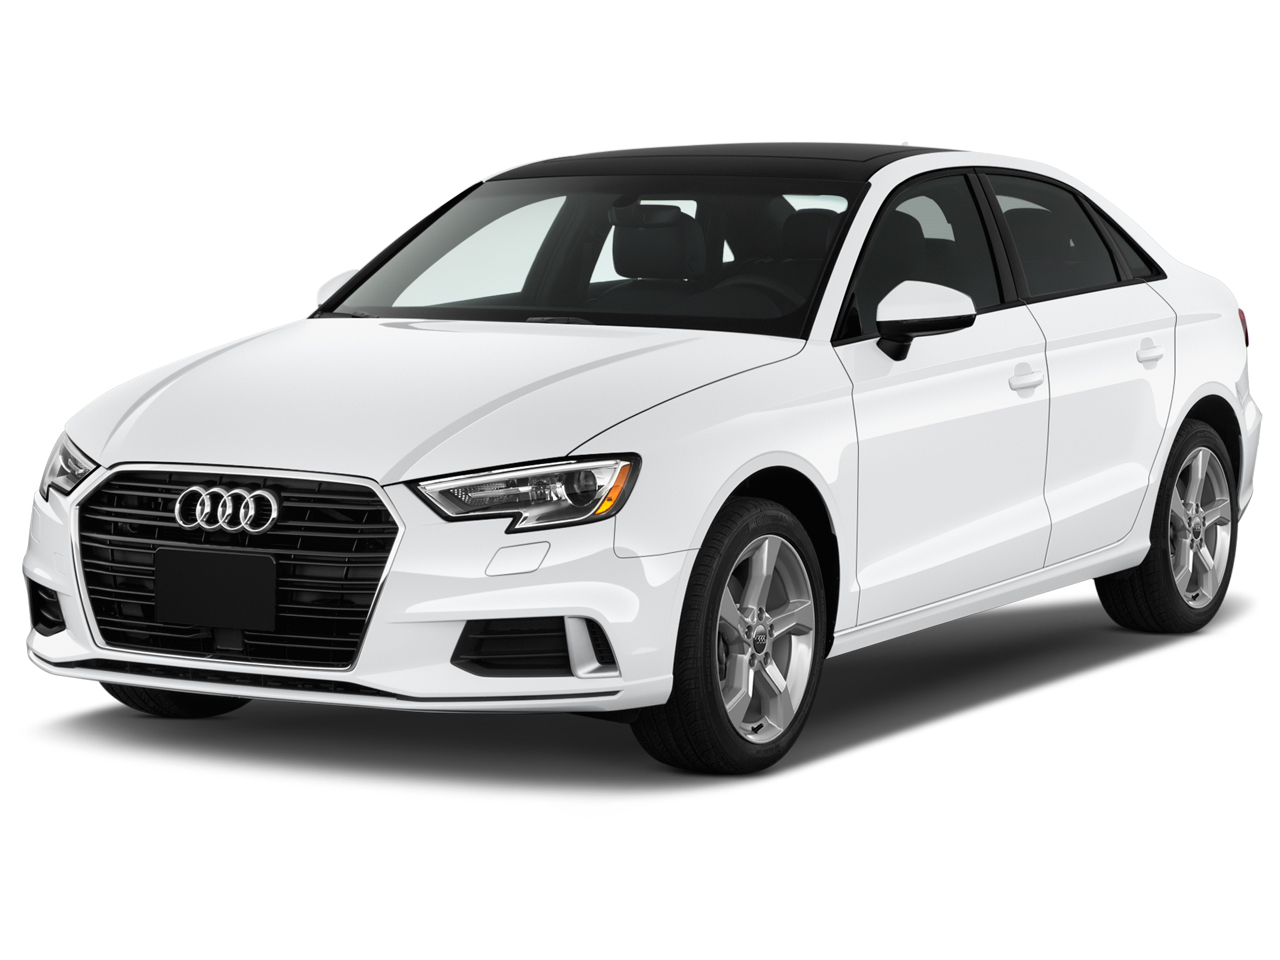 2019 Audi A3 Sedan Review, Ratings, Specs, Prices, And